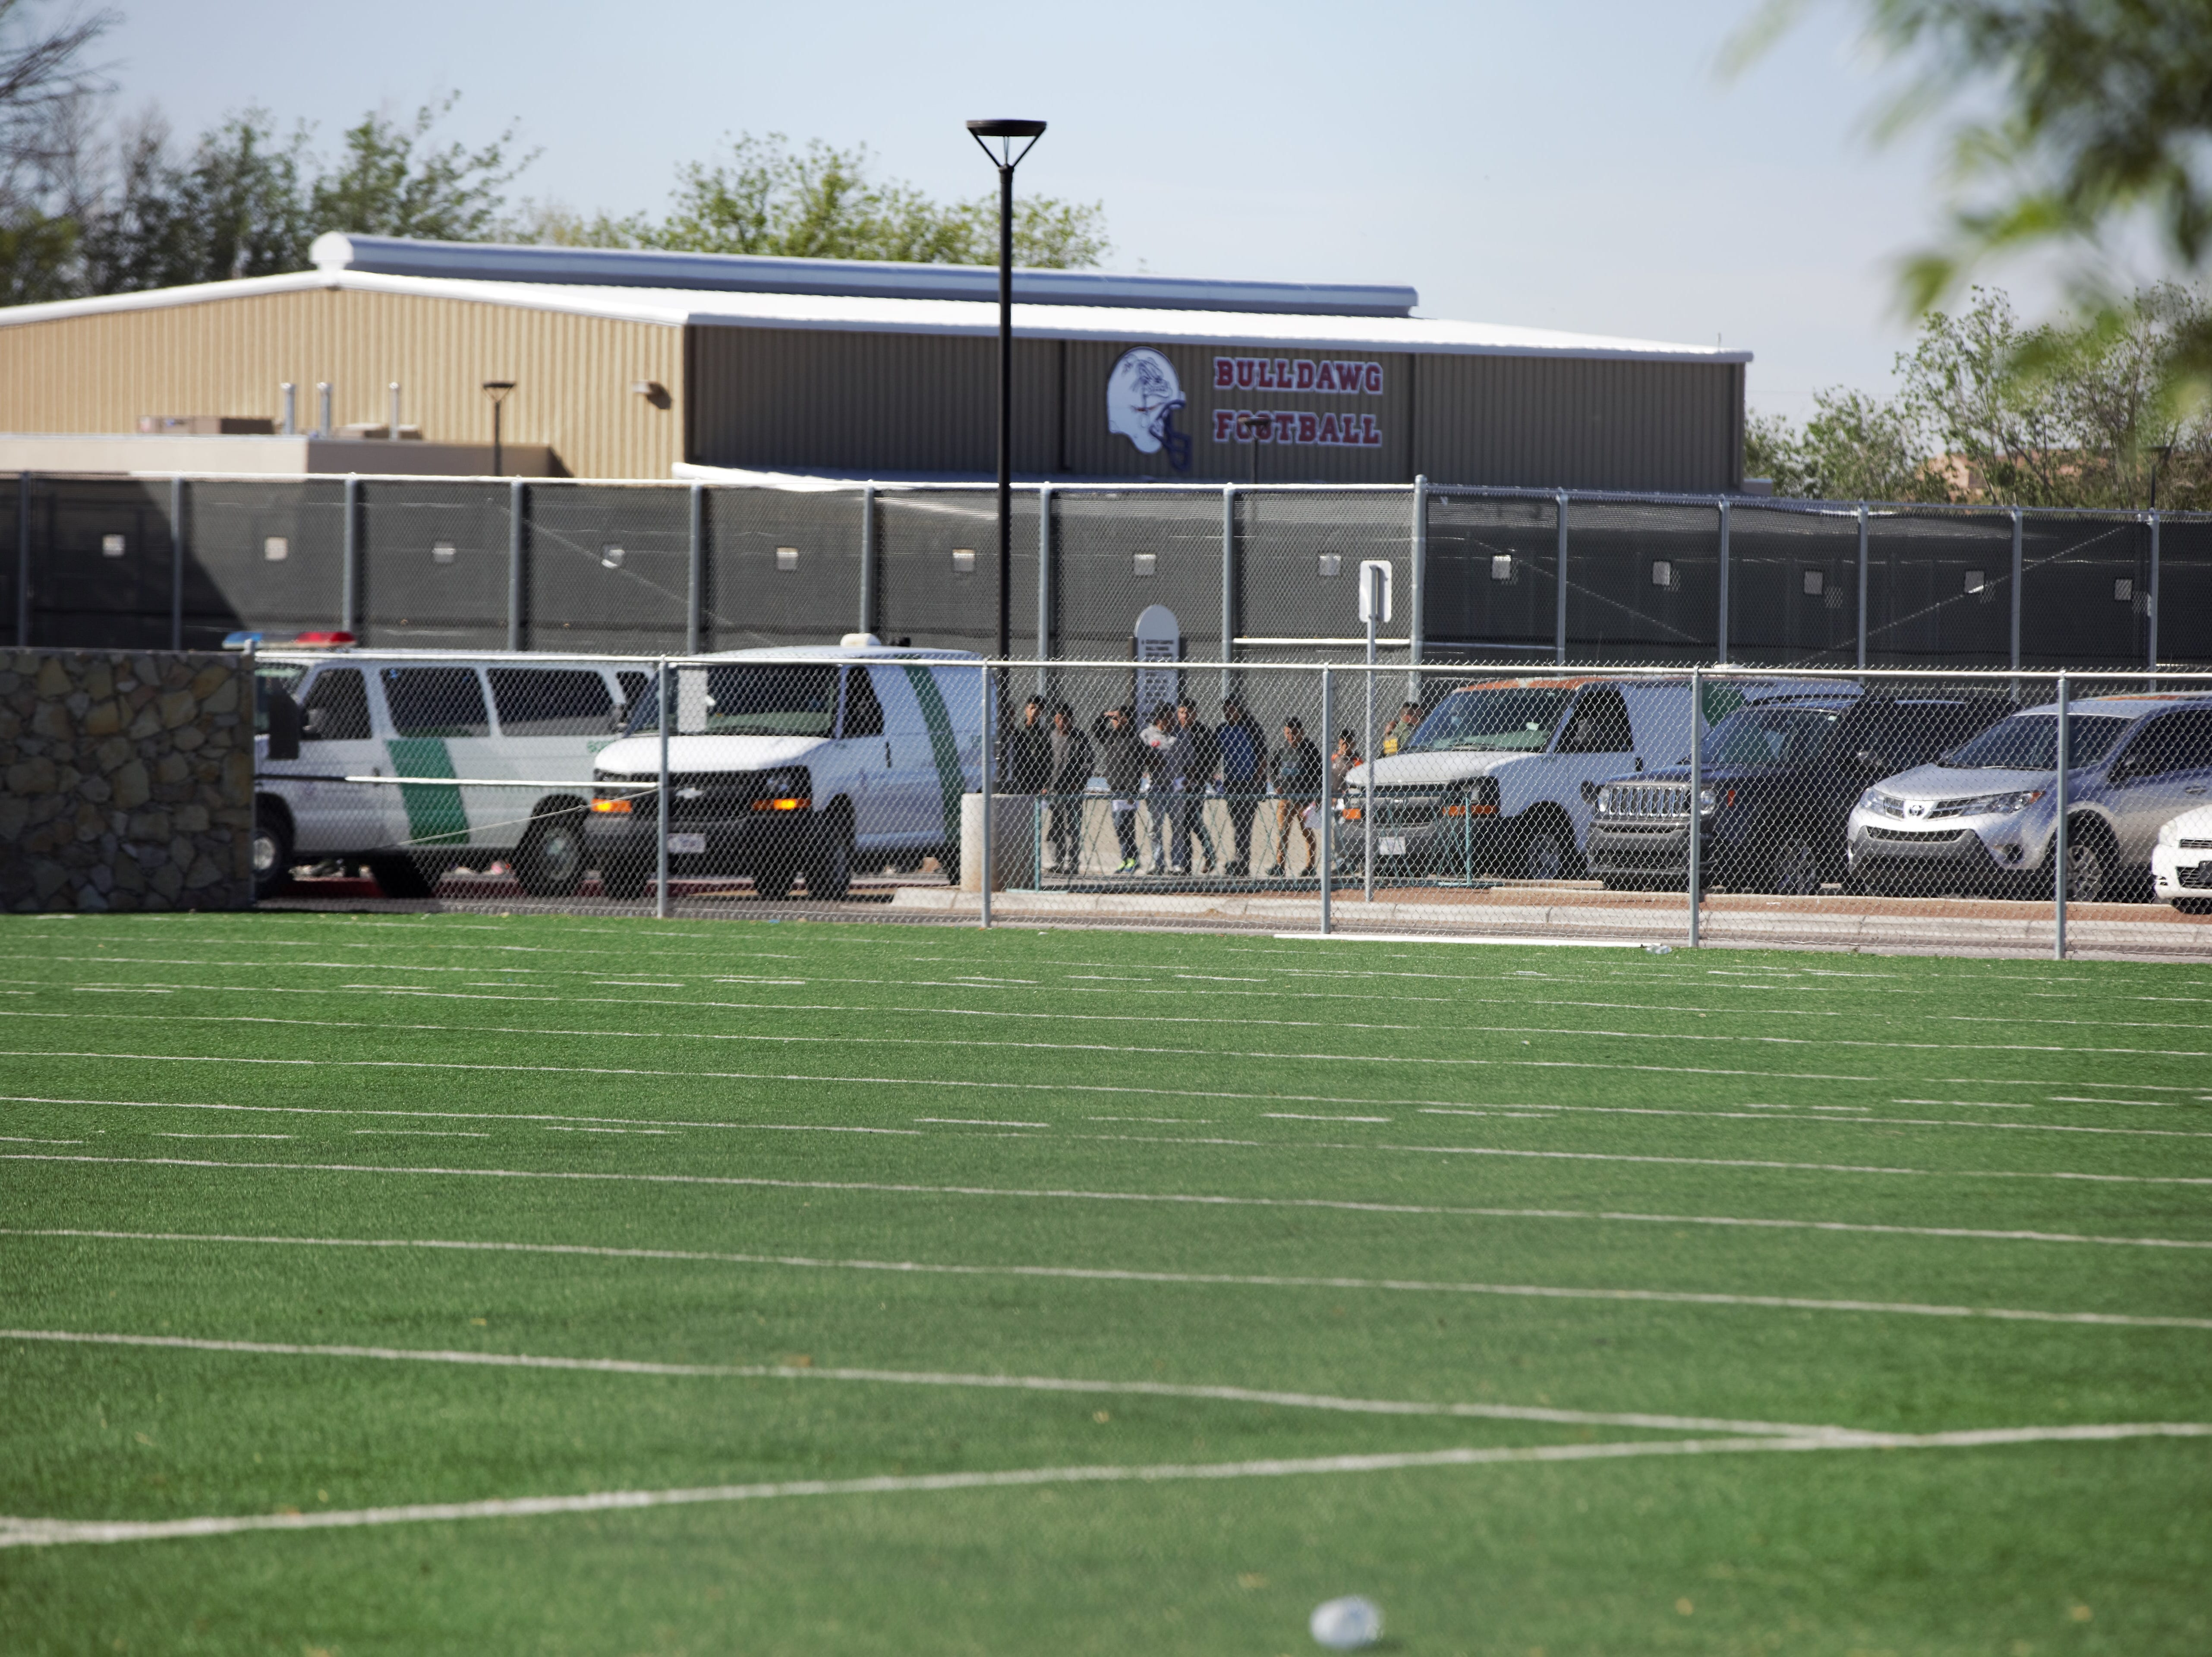 At approximately 9:15 a.m. on Friday, April 19, 2019, at least four U.S. Border Patrol vans were observed dropping off migrants at Las Cruces High School's athletic facility, where they are expected to remain until Monday. Las Cruces Public Schools are on spring break until Tuesday, April 23.